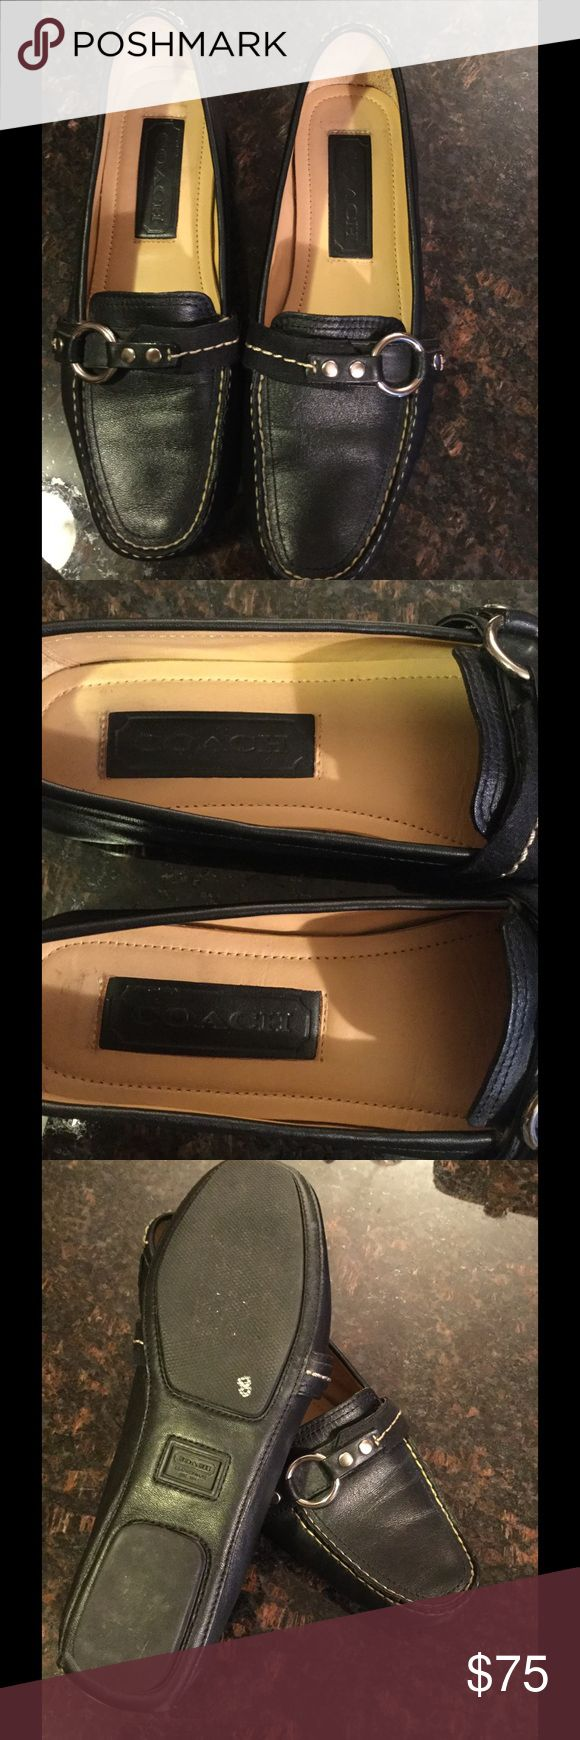 Coach leather driving loafers 100% AUTHENTIC soft black leather coach loafers or driving shoes....is a brand-new  I can't tell you If I ever even put them one I really dint think I did there and 100% excellent brand-new condition totally forgot I even bought them but very comfortable you have any questions please feel free to ask thank you for looking and happy poshing Coach Shoes Flats & Loafers